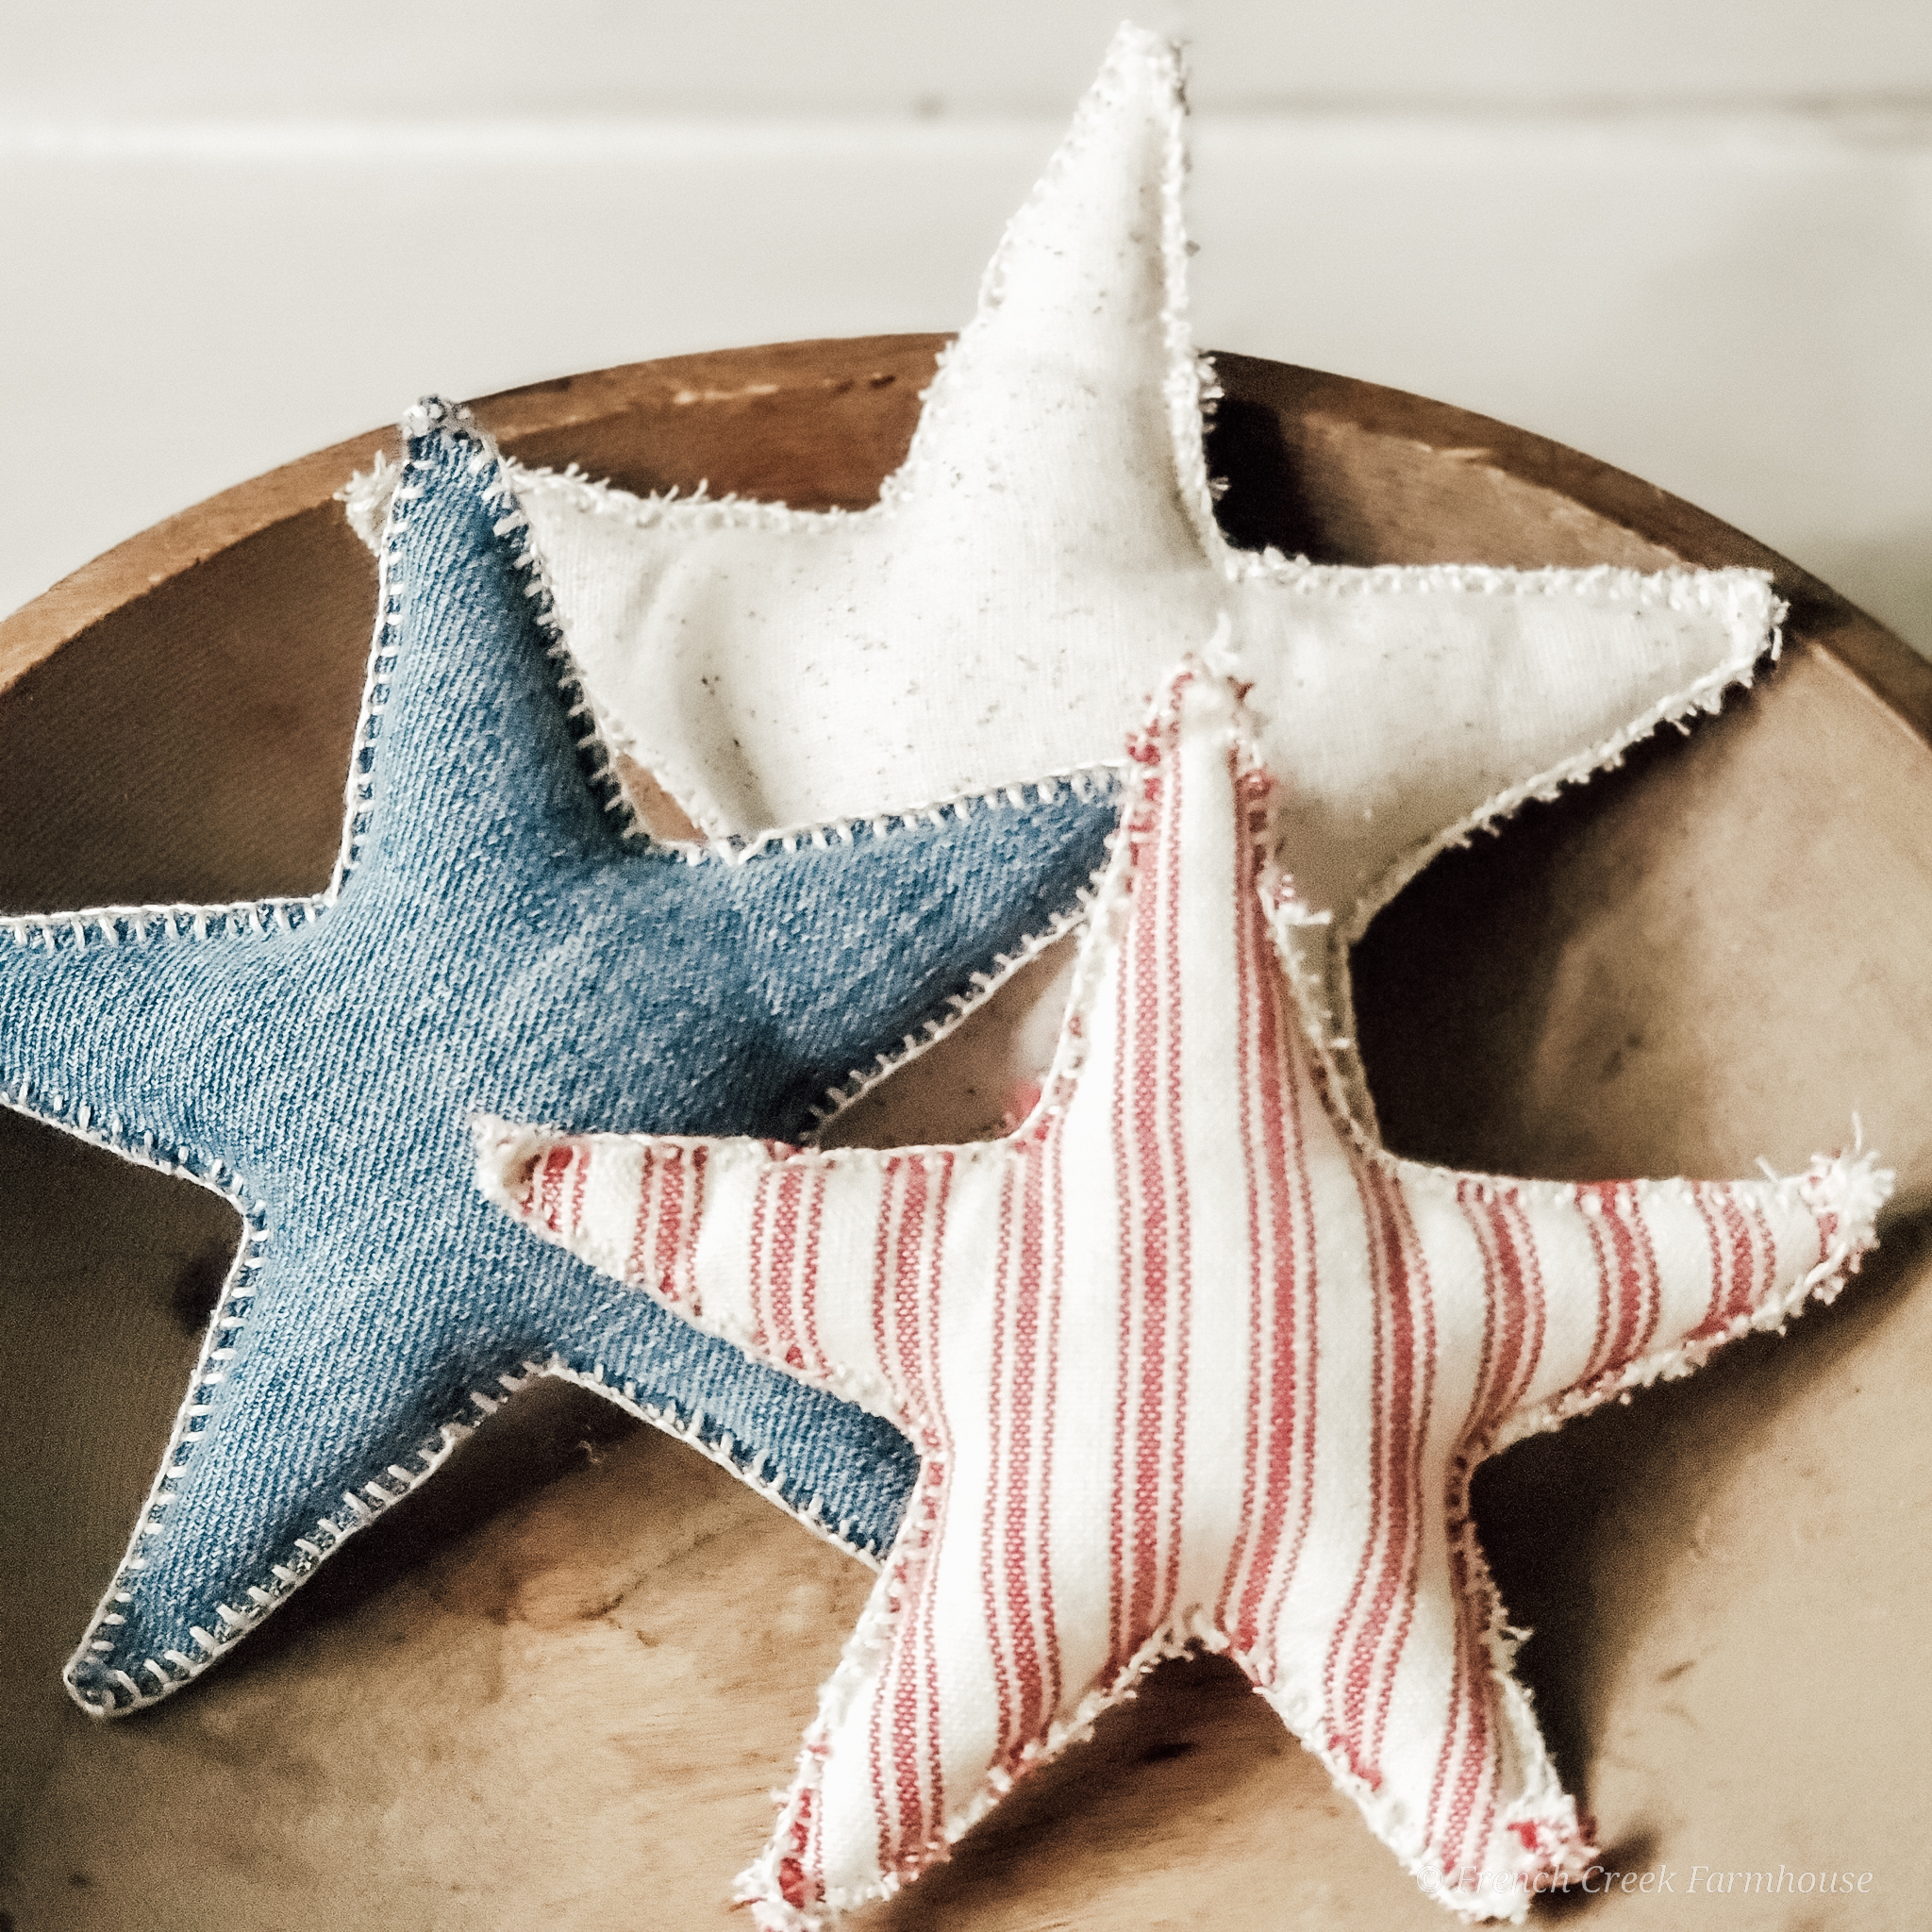 These stars make the perfect patriotic bowl filler